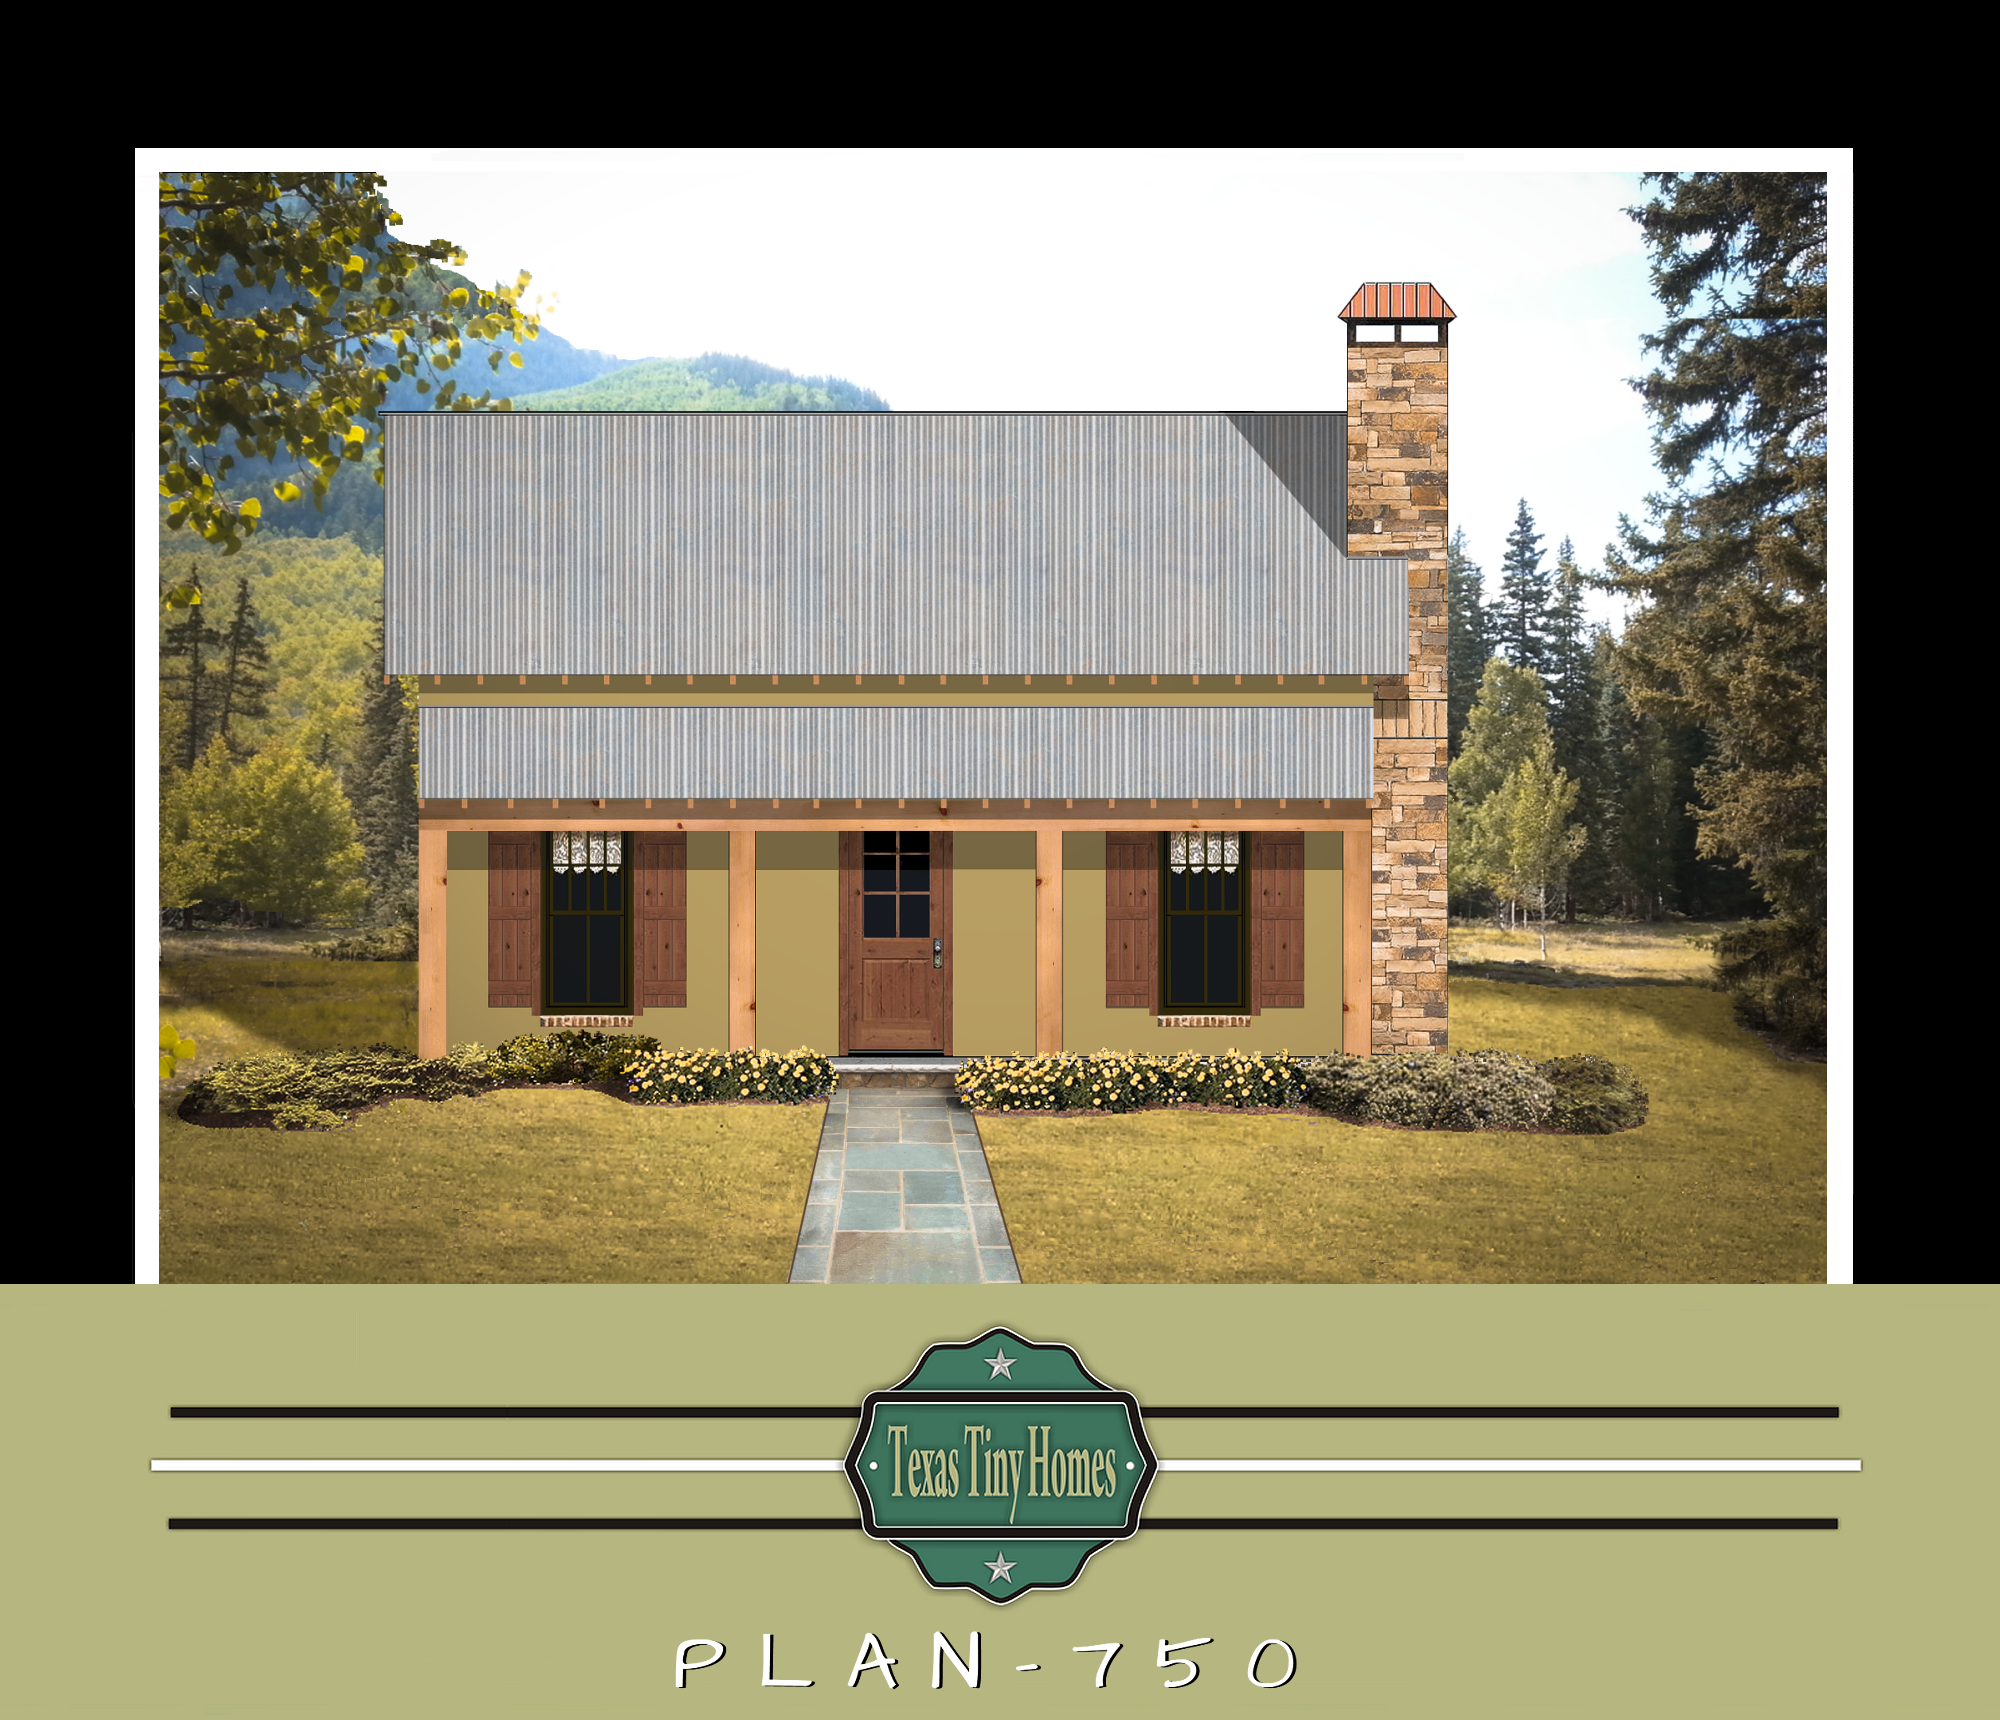 Texas tiny homes plan 750 for Texas home builders floor plans